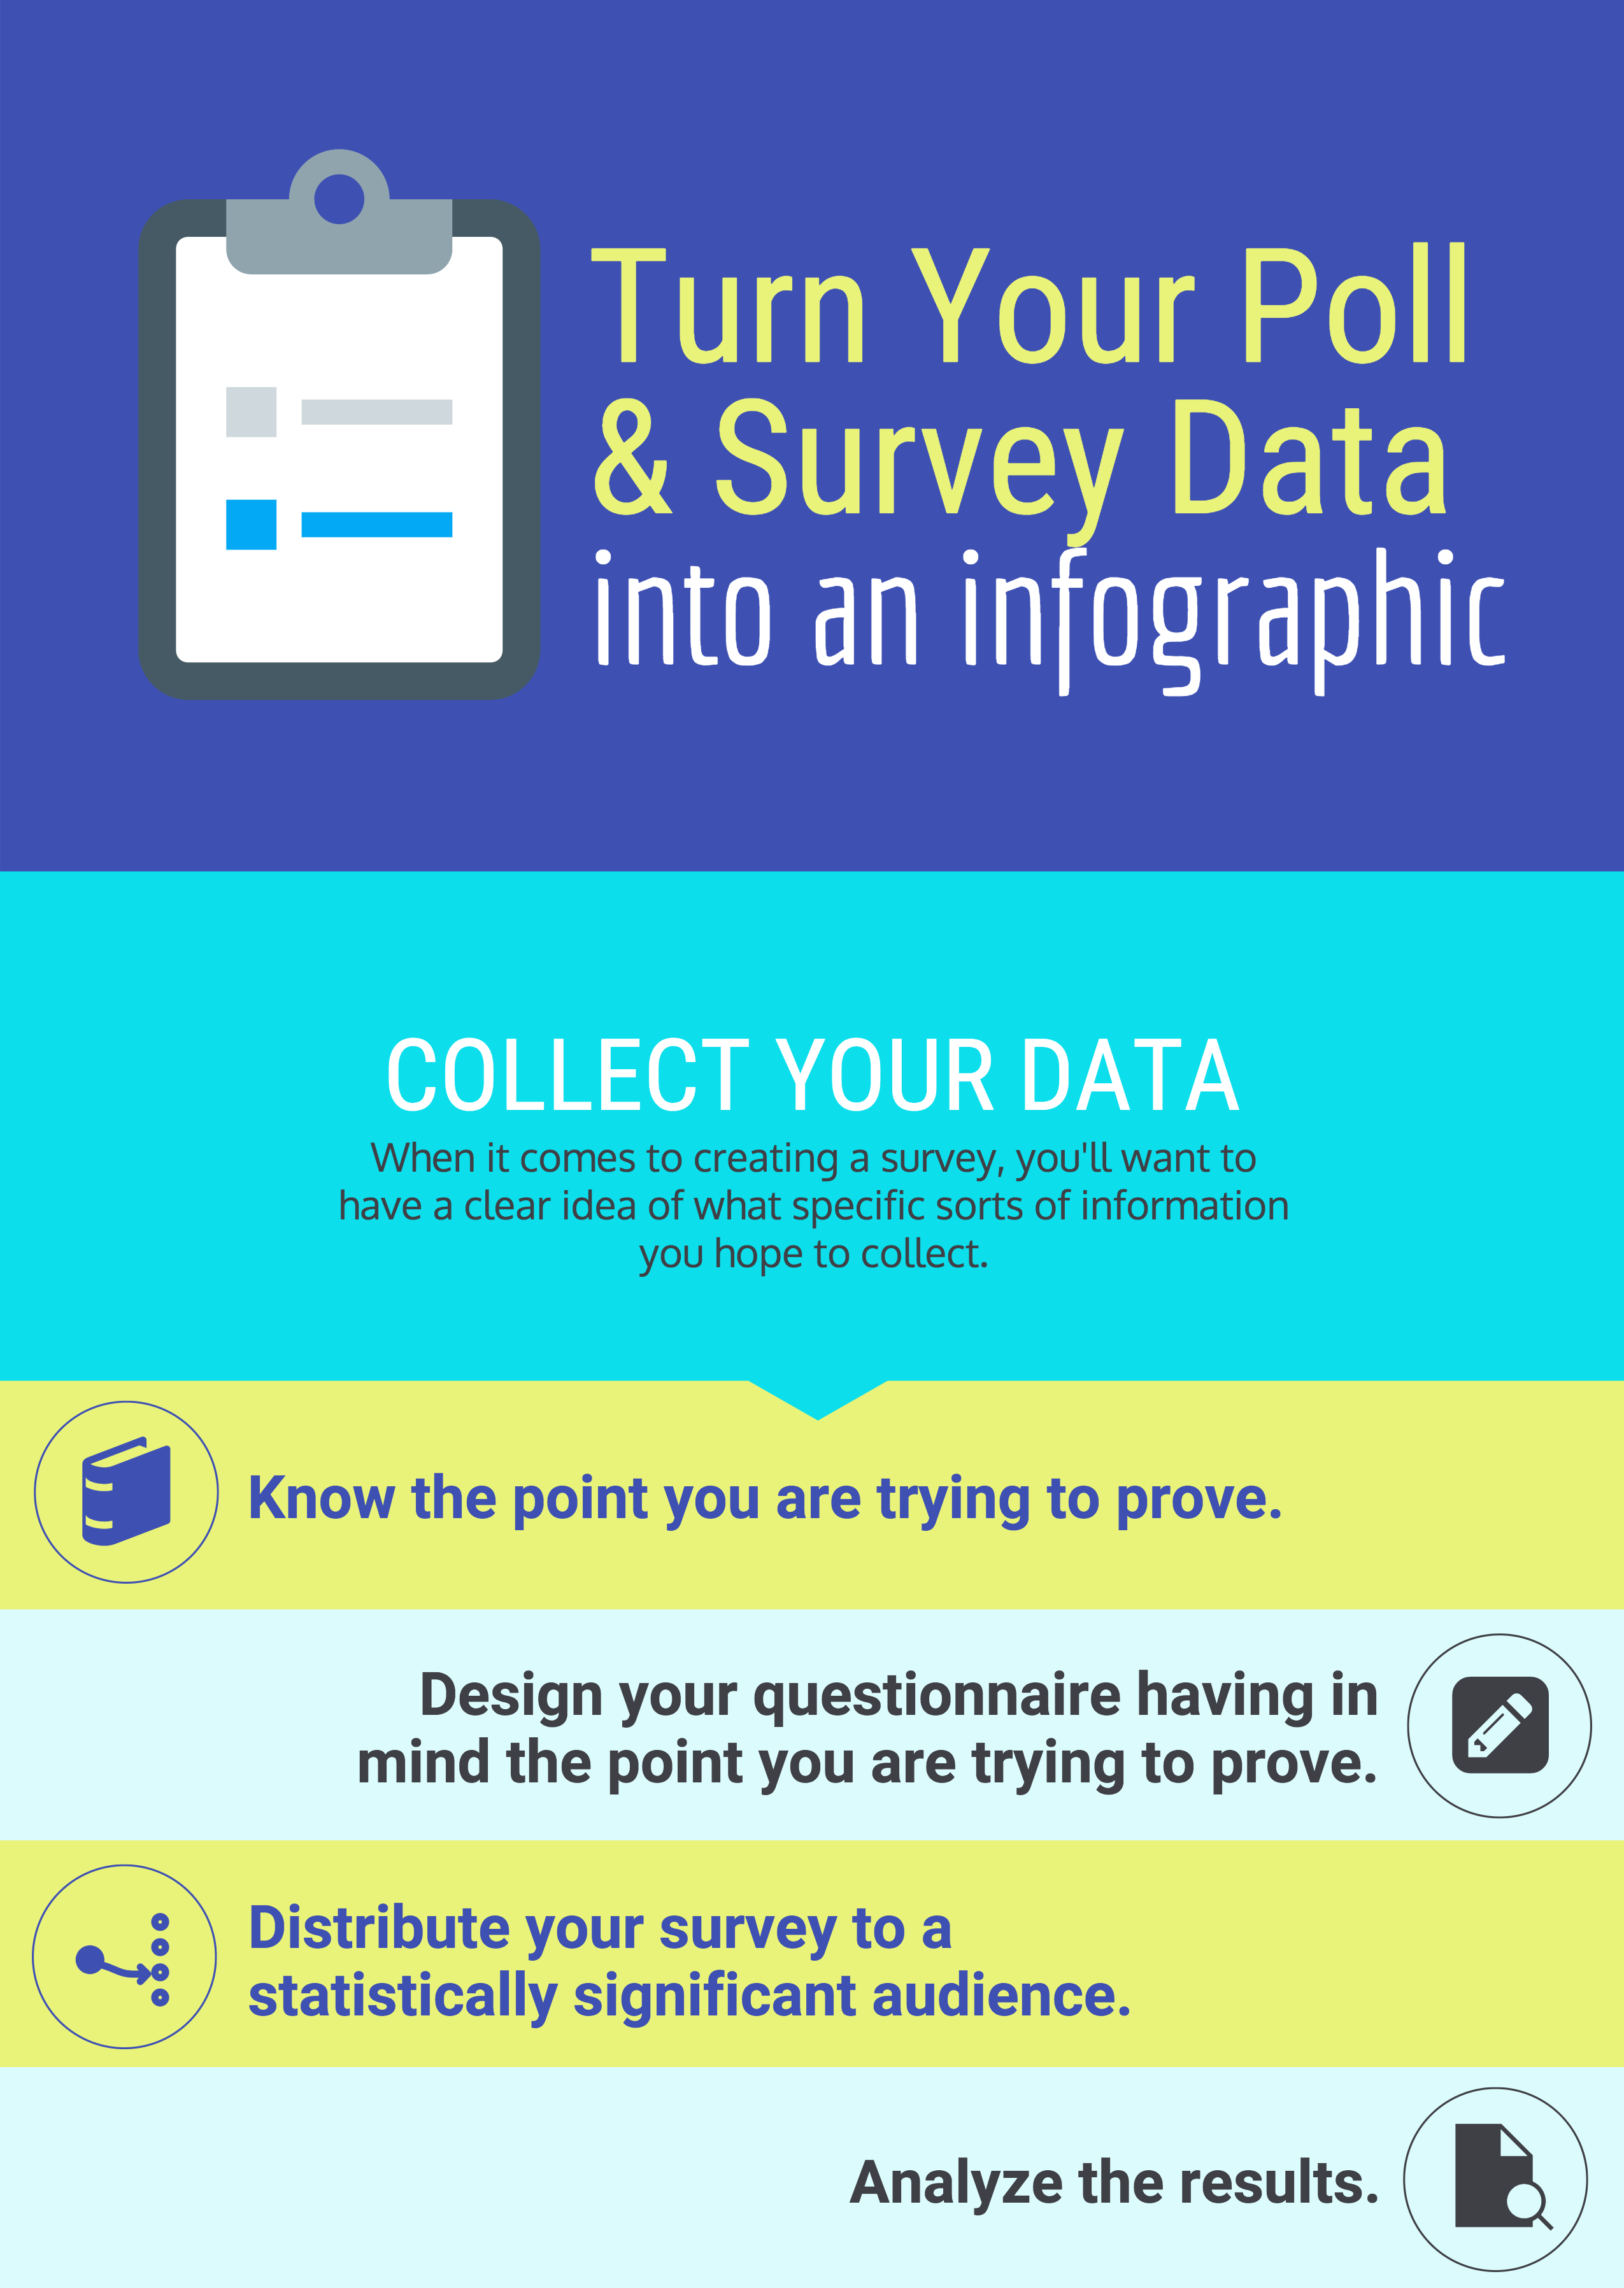 Informational poster template